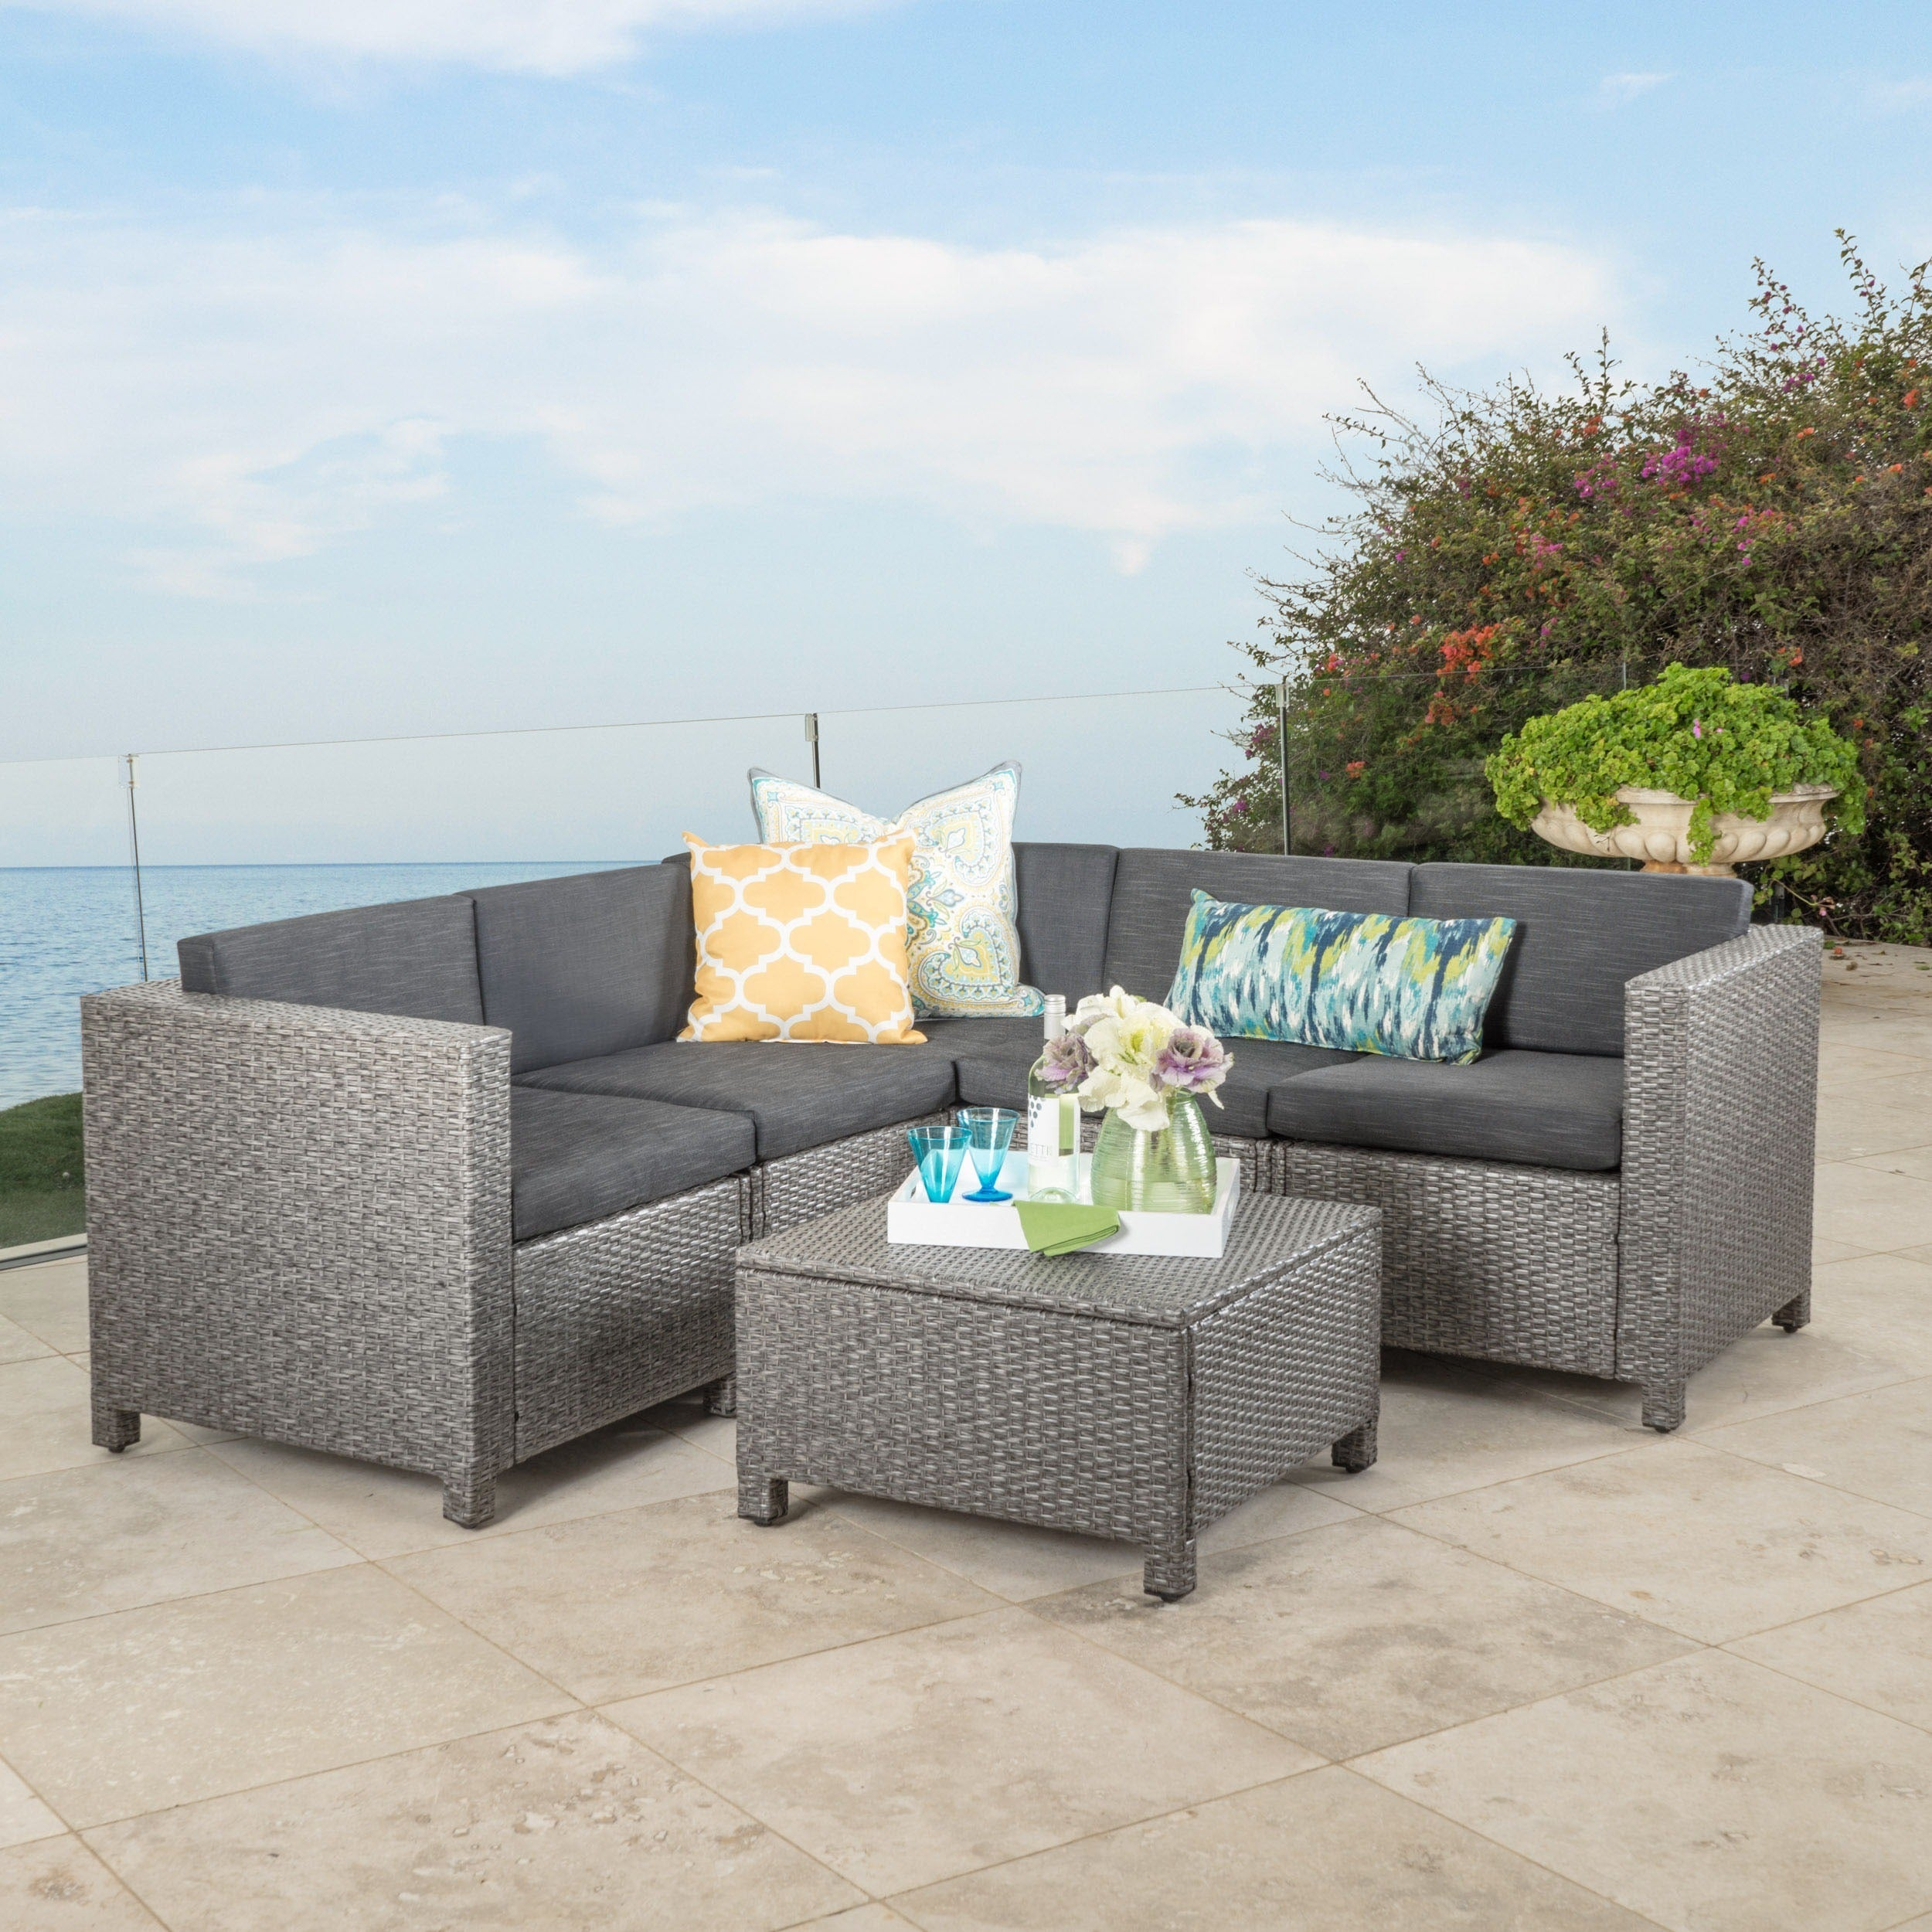 Shop Puerta Outdoor 6 Piece Wicker V Shaped Sectional Sofa Set By  Christopher Knight Home   On Sale   Free Shipping Today   Overstock.com    12502410